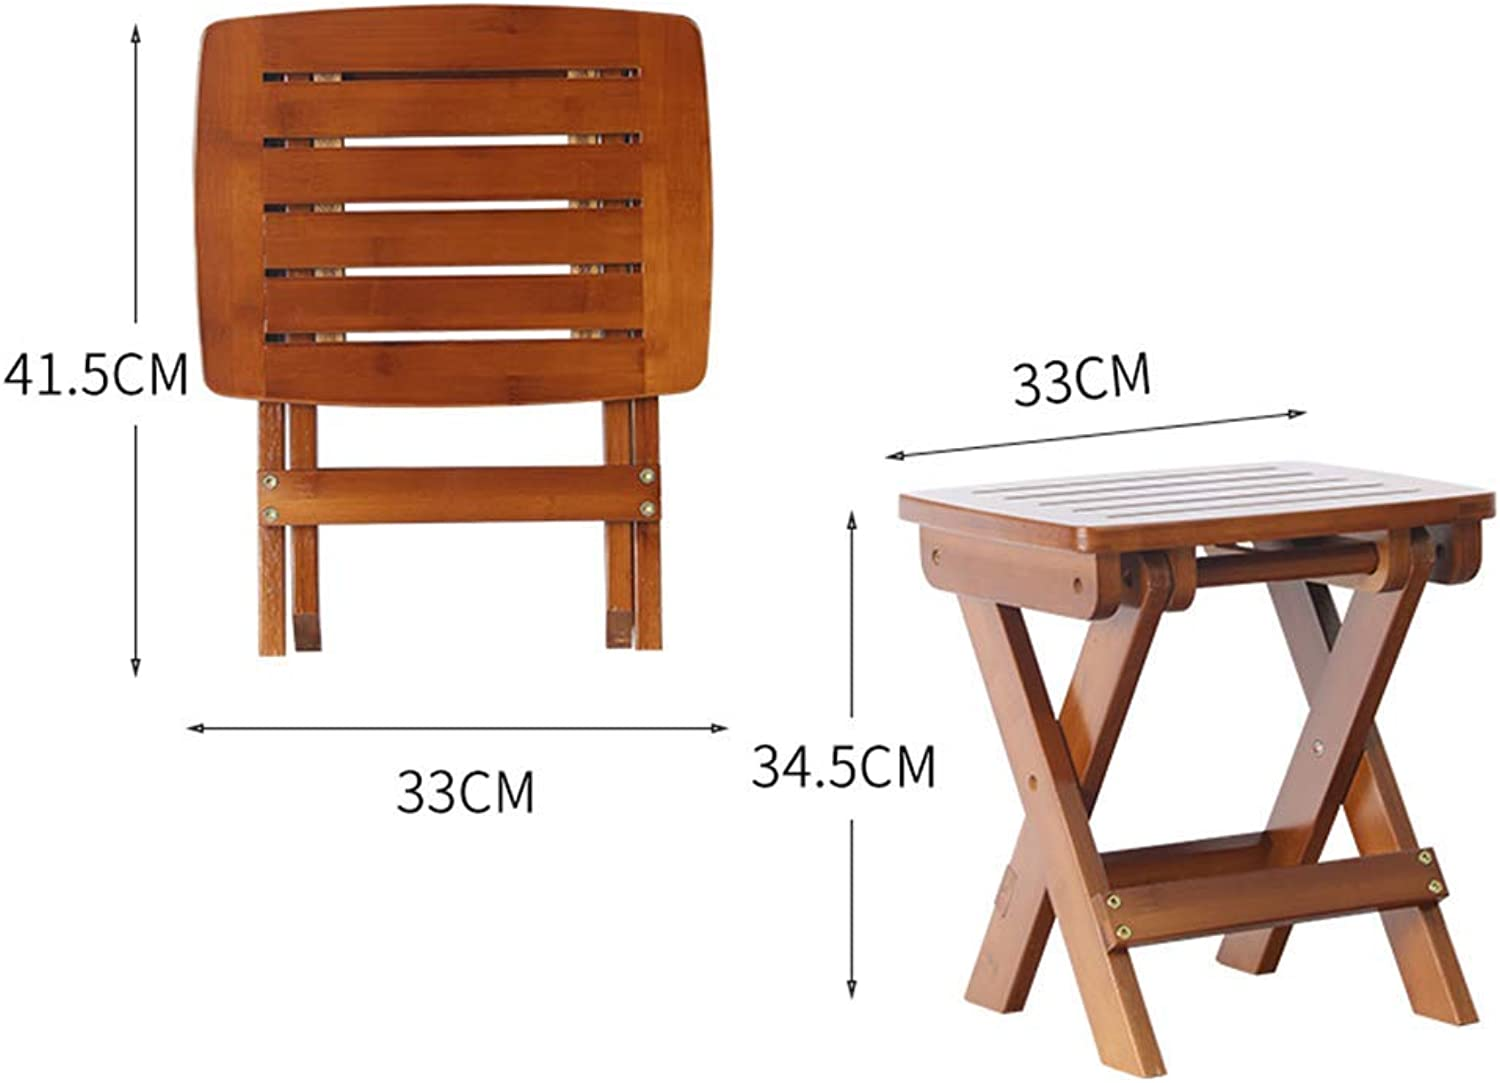 JZX Leisure Folding Home Dining Chair, Stool, Bamboo Bench, Multi-Functional Modern Stool